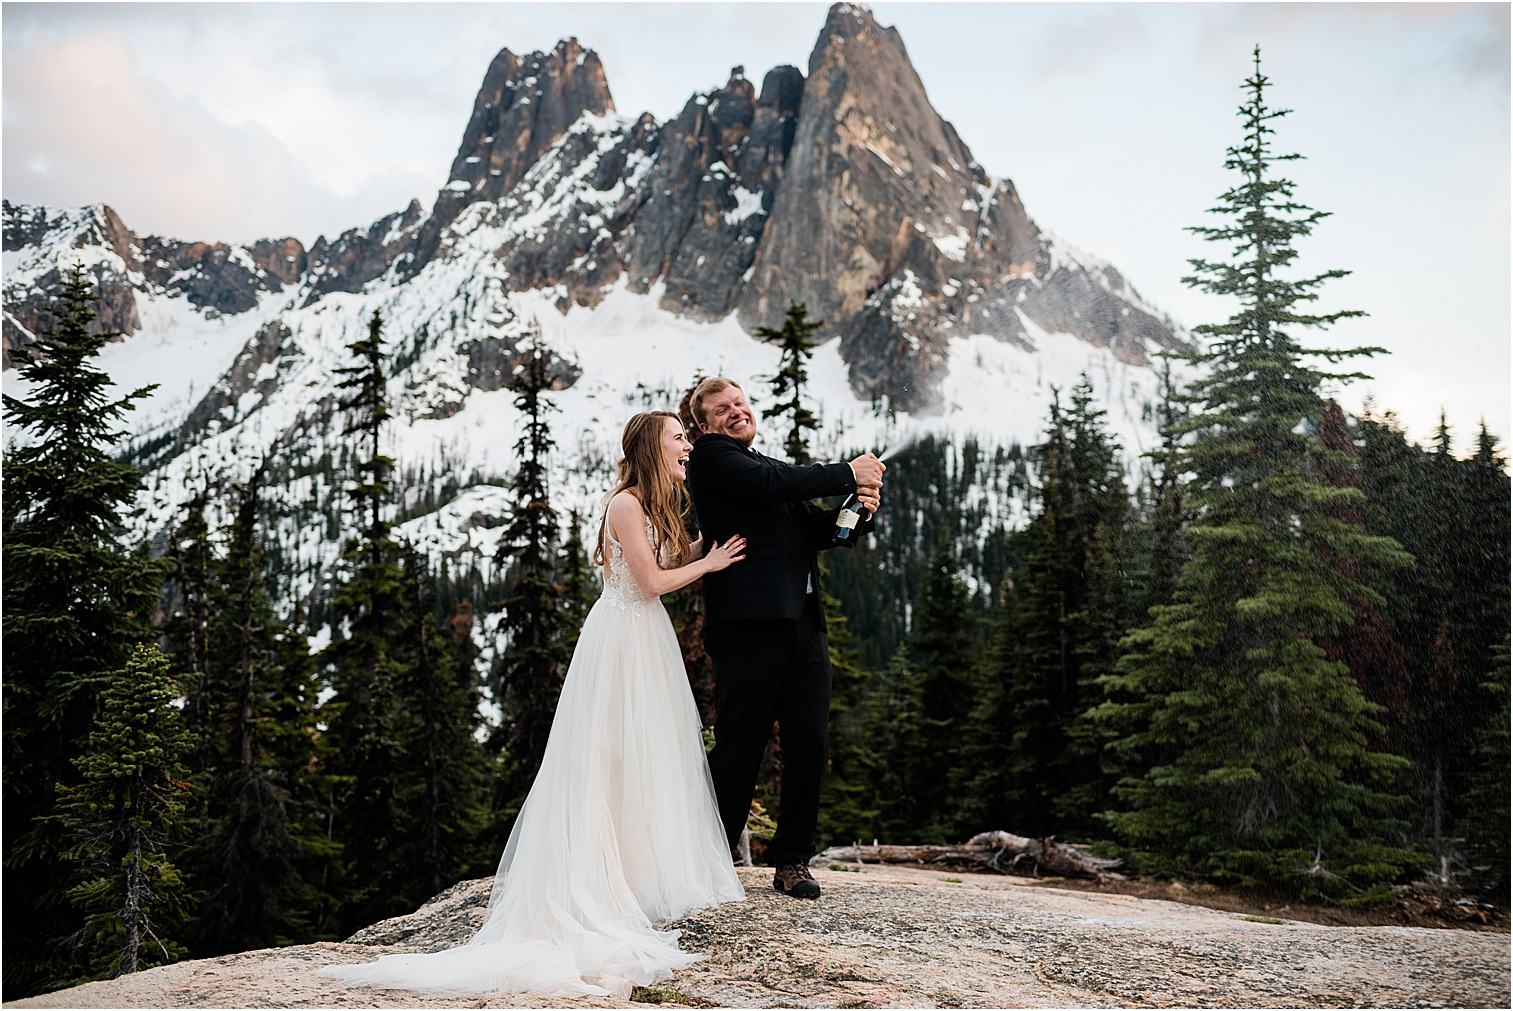 Packing Checklist for Hiking Elopement. Image by Forthright Photo, Seattle Wedding and Elopement Photographers.